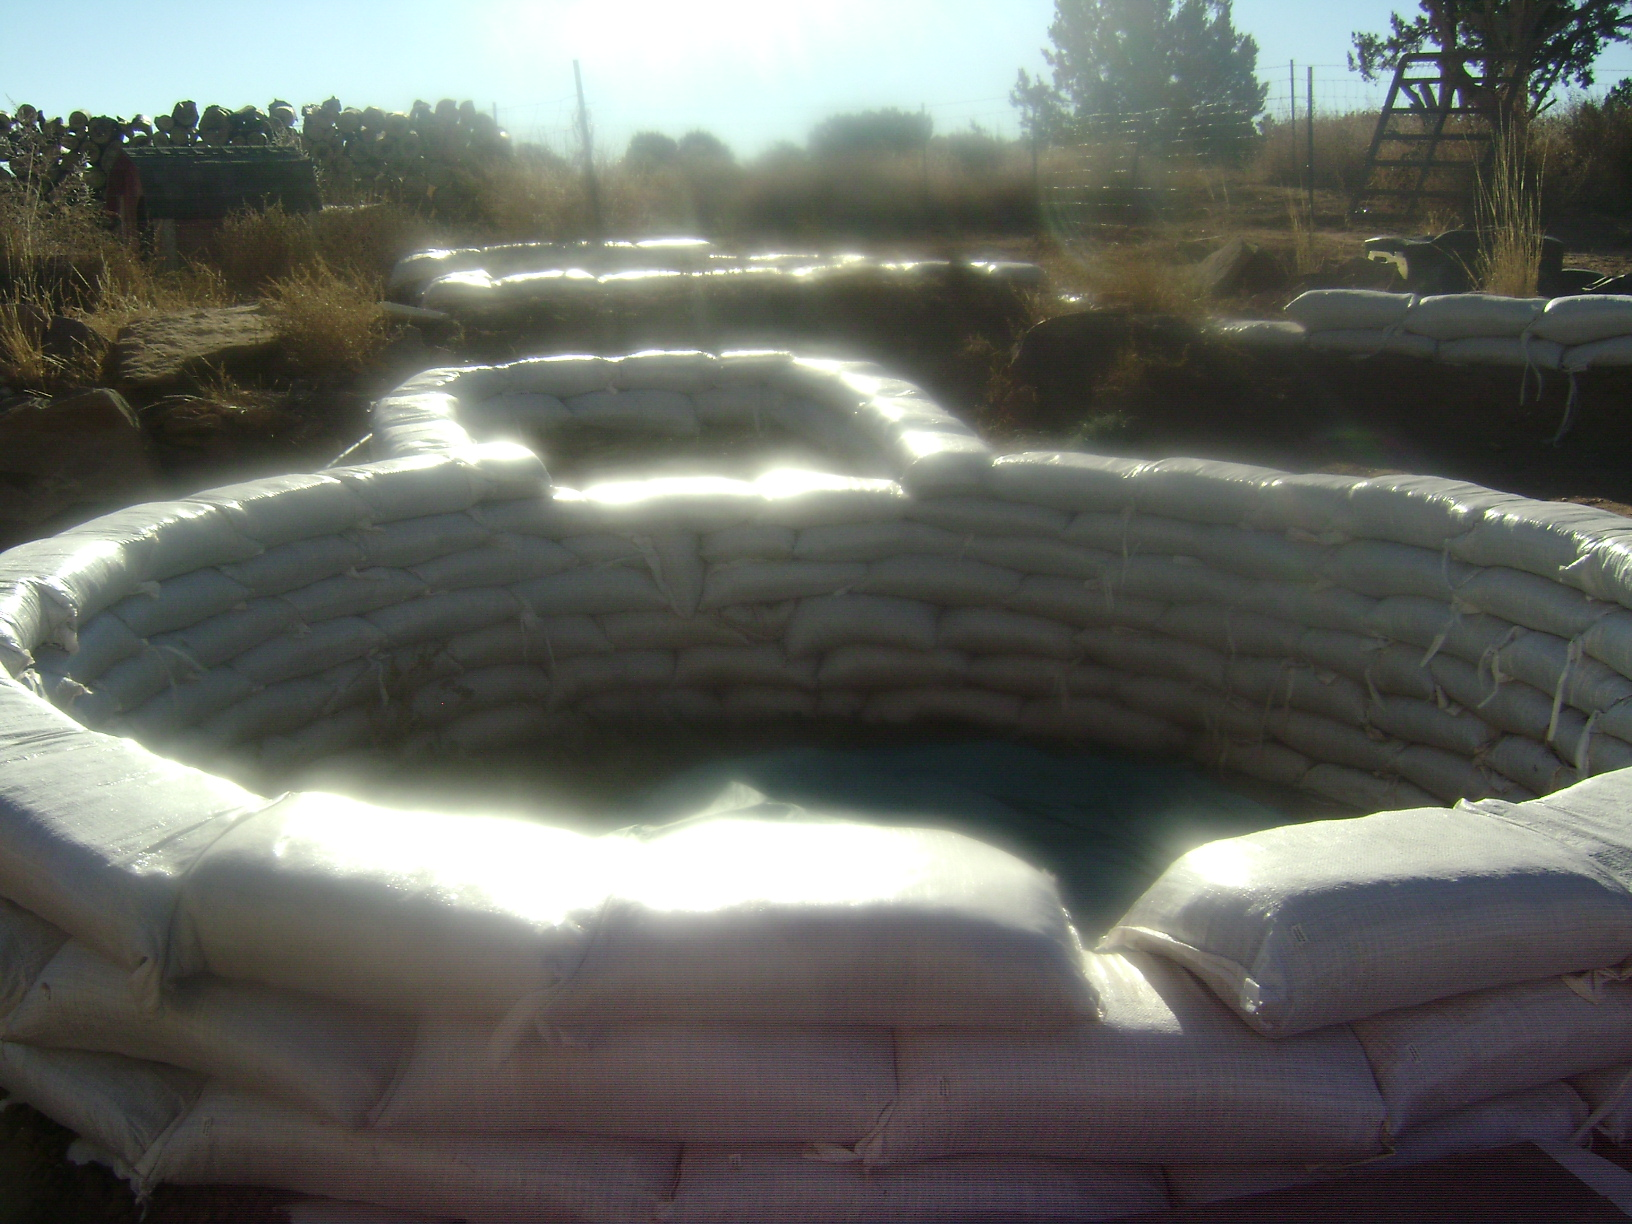 More Pics Of Earth Bag Swimming Pool Ponds Forum At Permies